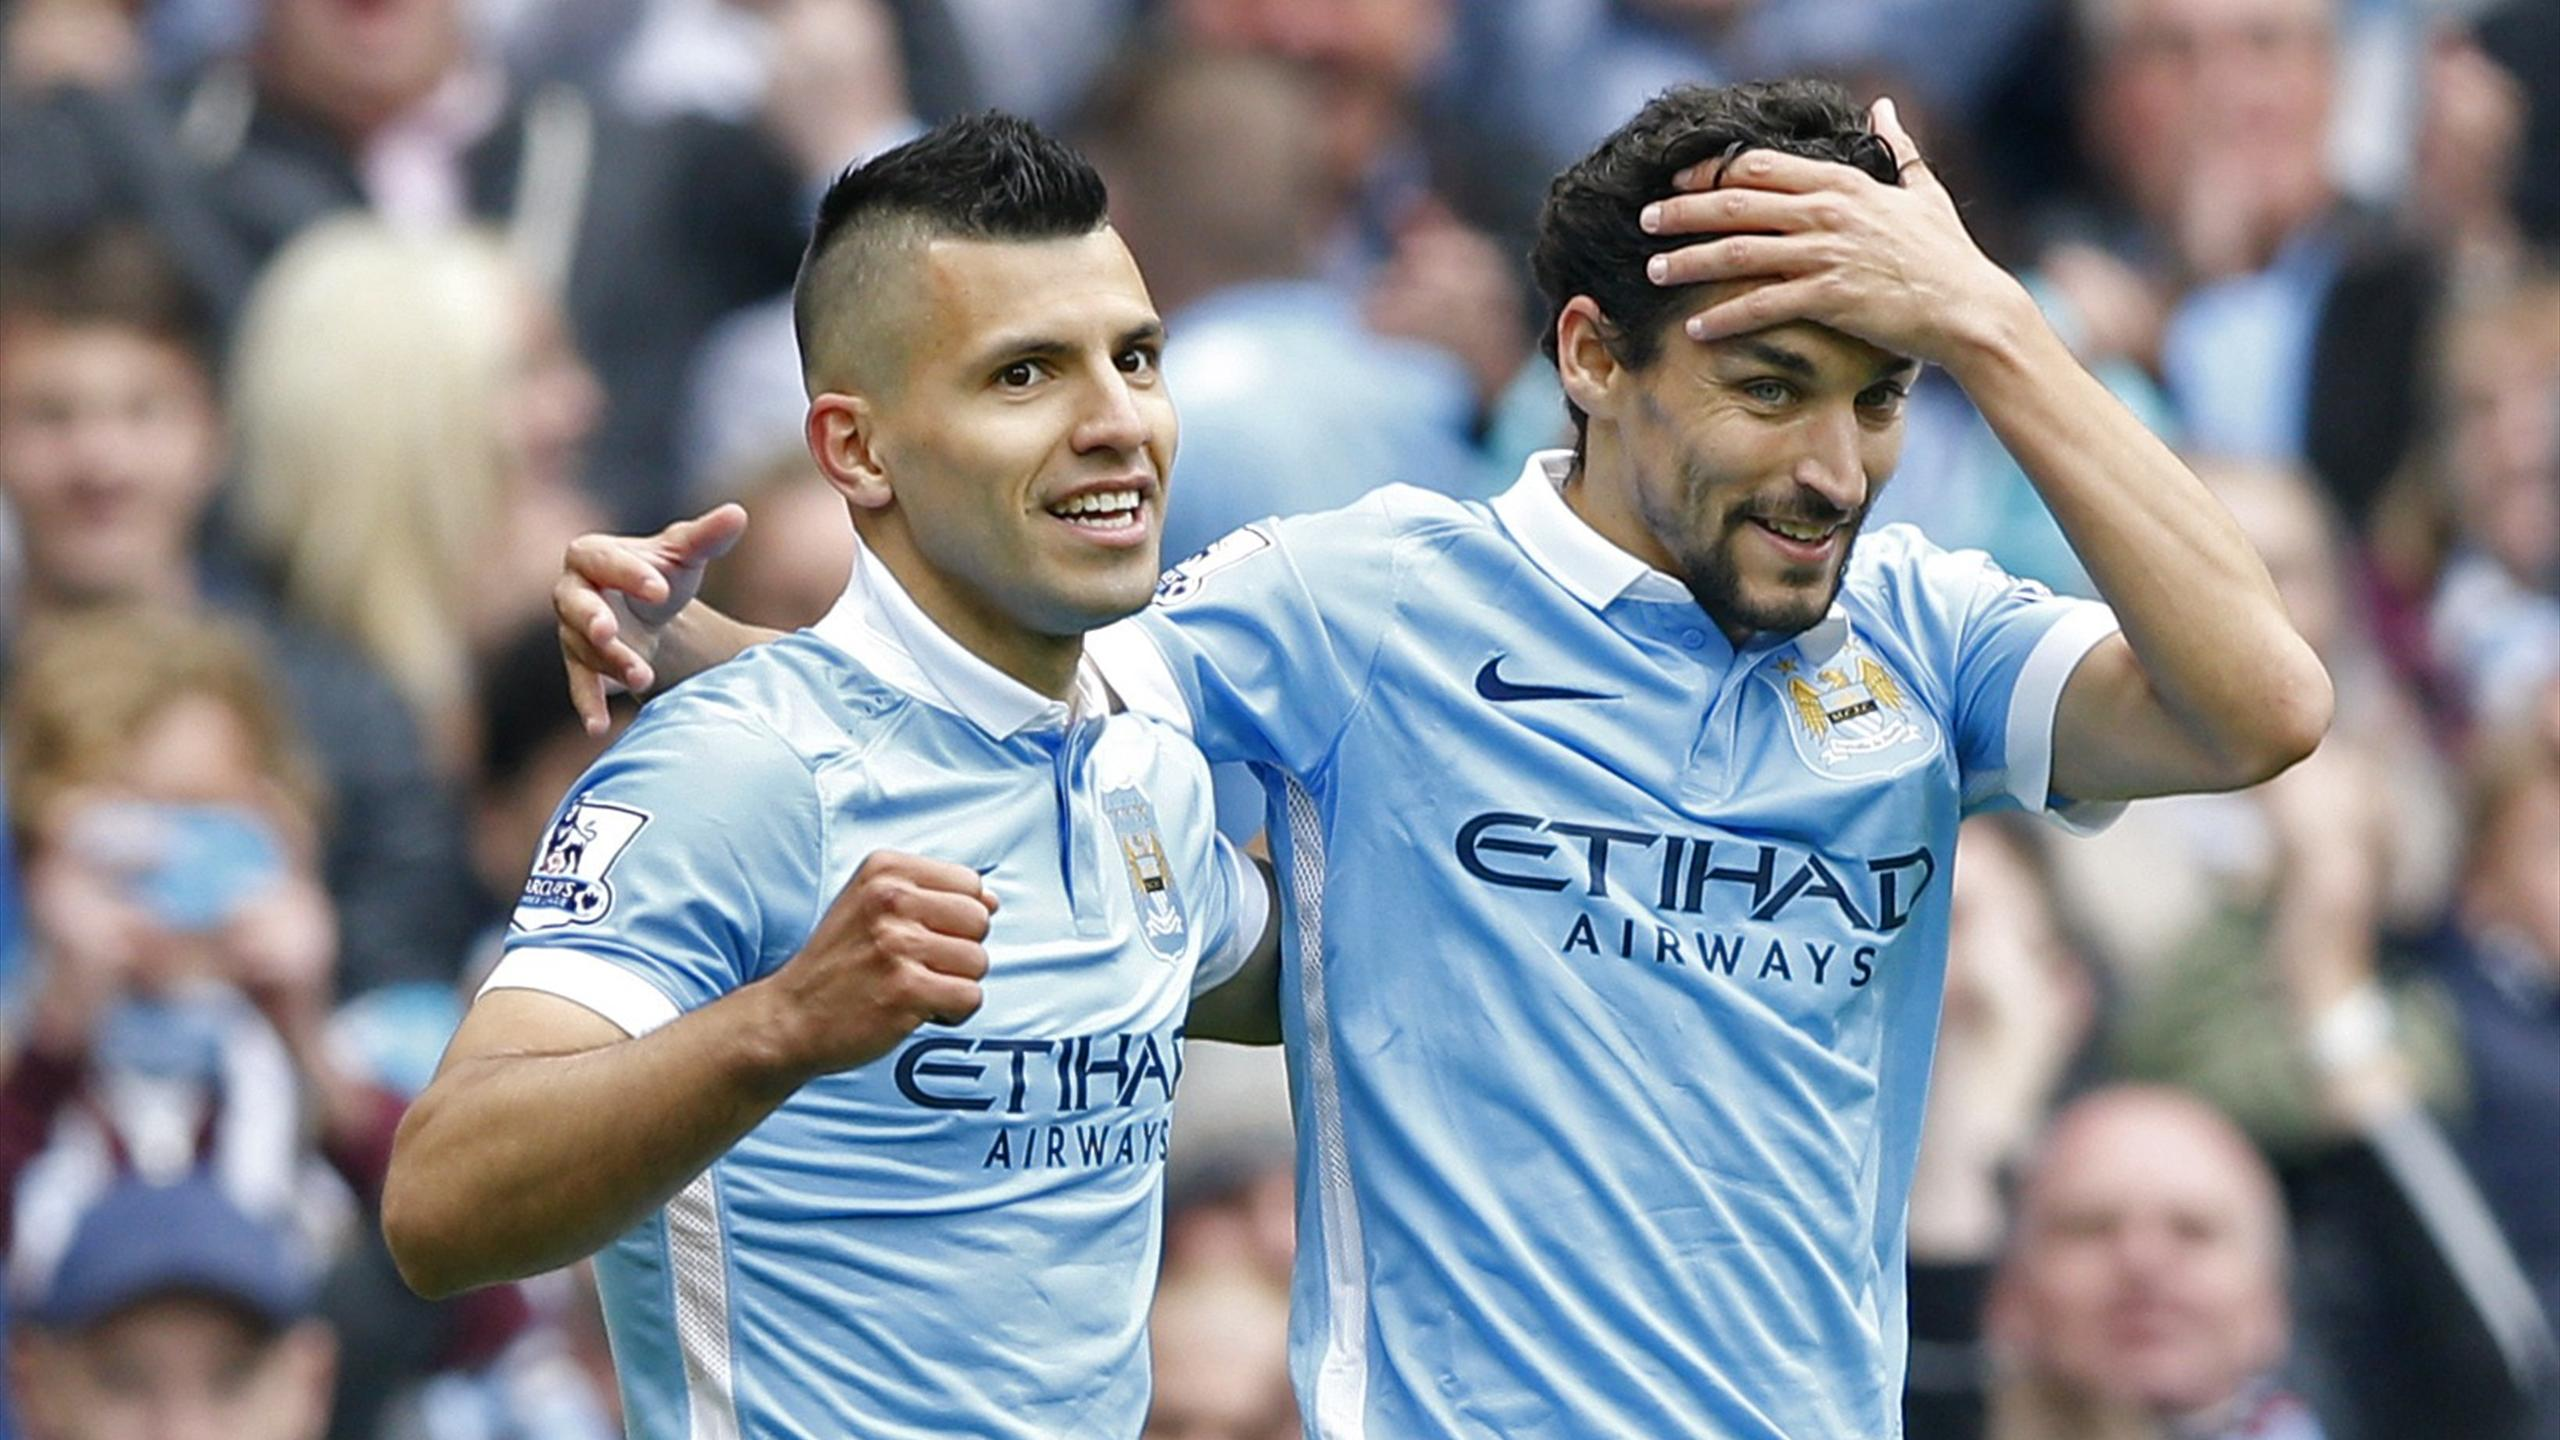 Sergio Aguero celebrates with Jesus Navas after scoring the third goal for Manchester City and completing his hat trick